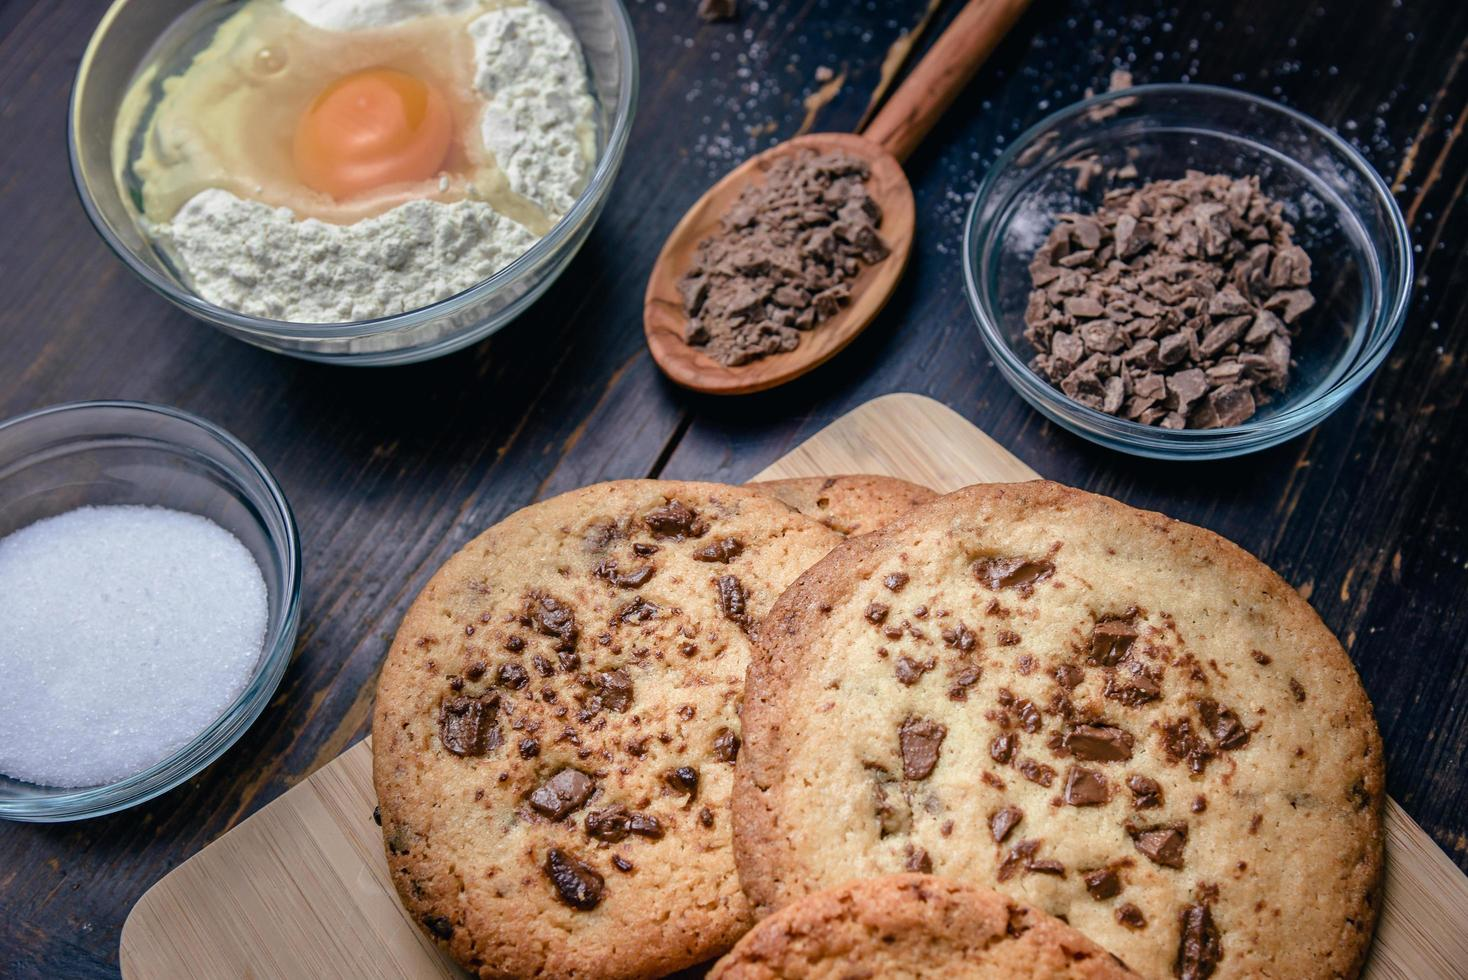 Chocolate chip cookies with ingredients photo